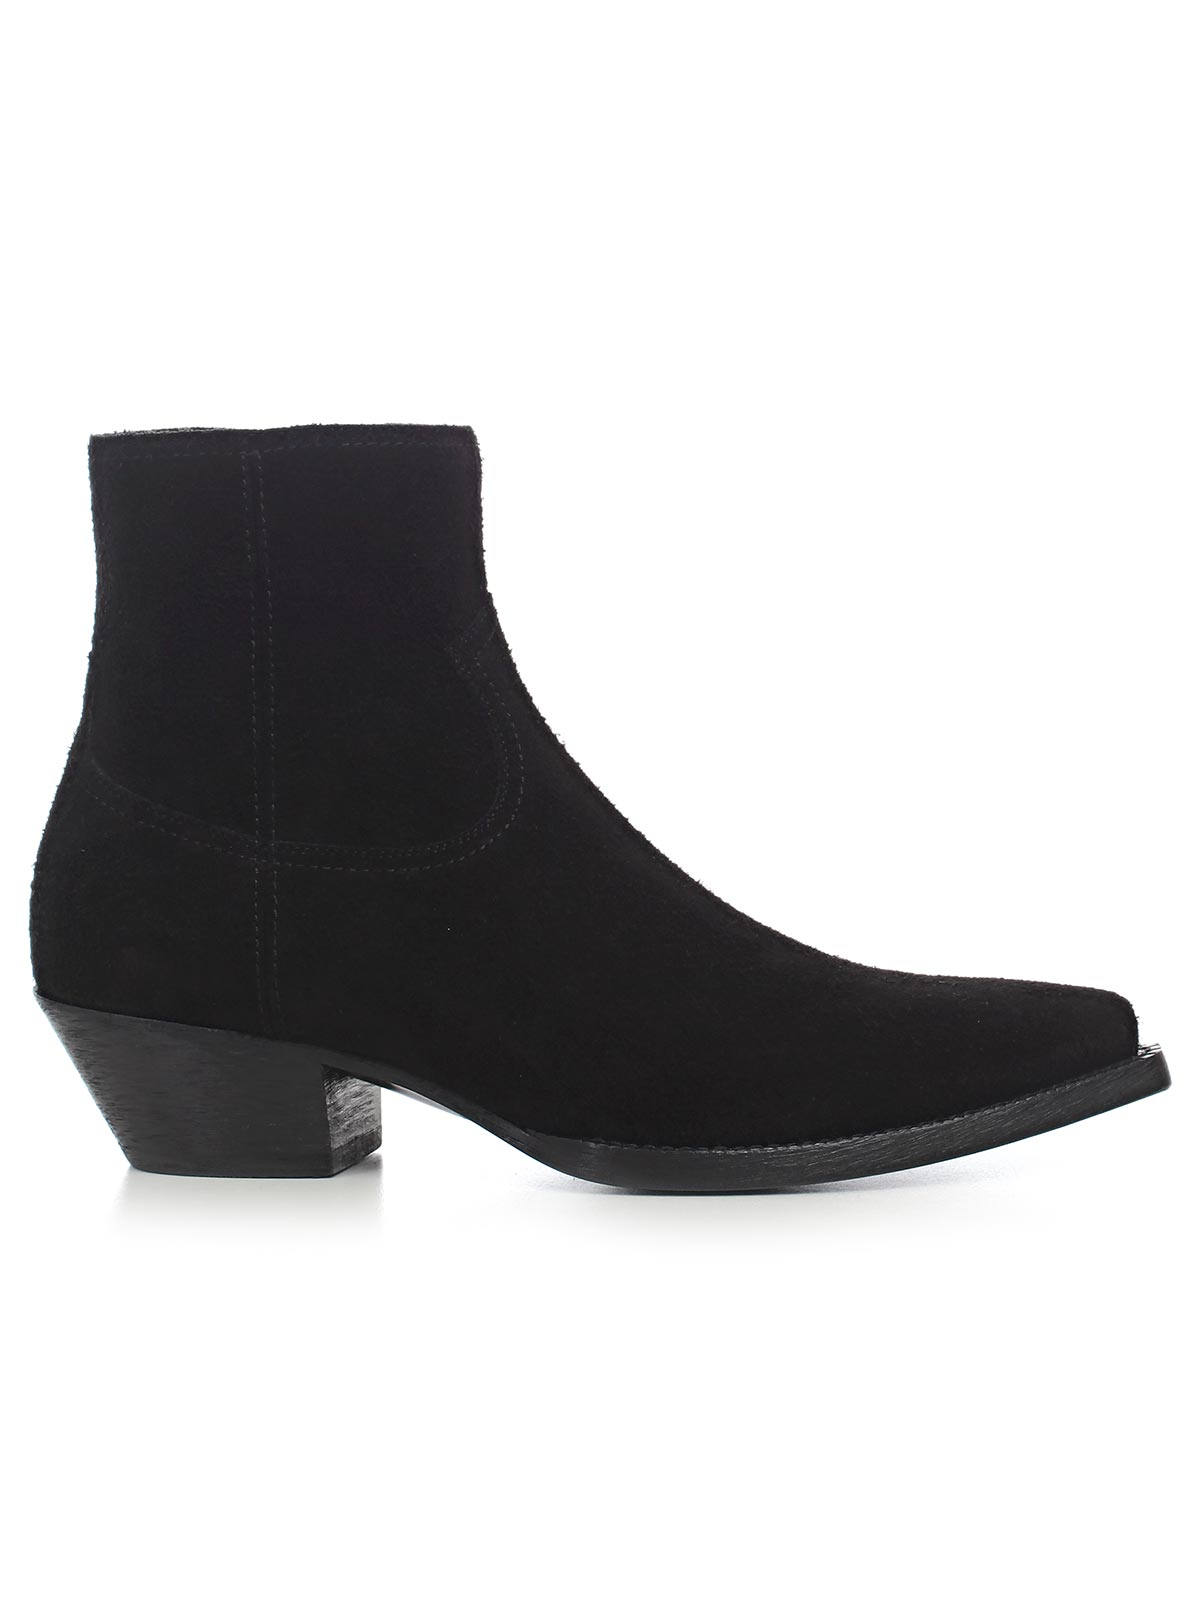 Picture of Saint Laurent Boots